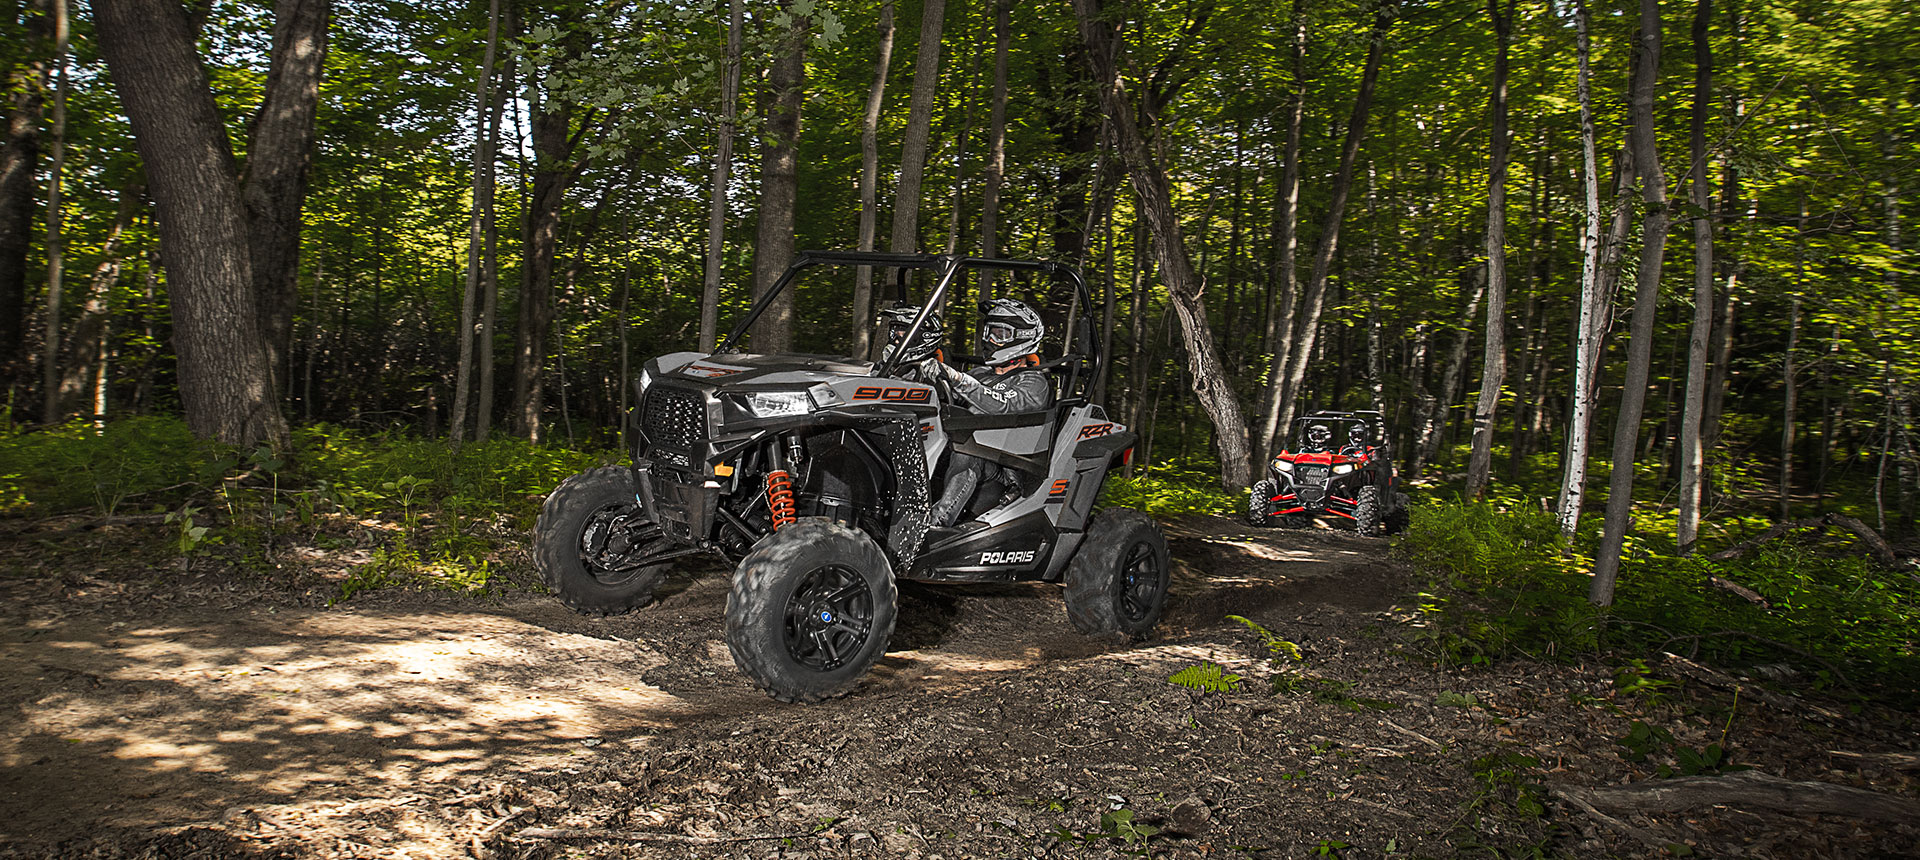 2019 Polaris RZR S 900 EPS in Elma, New York - Photo 8